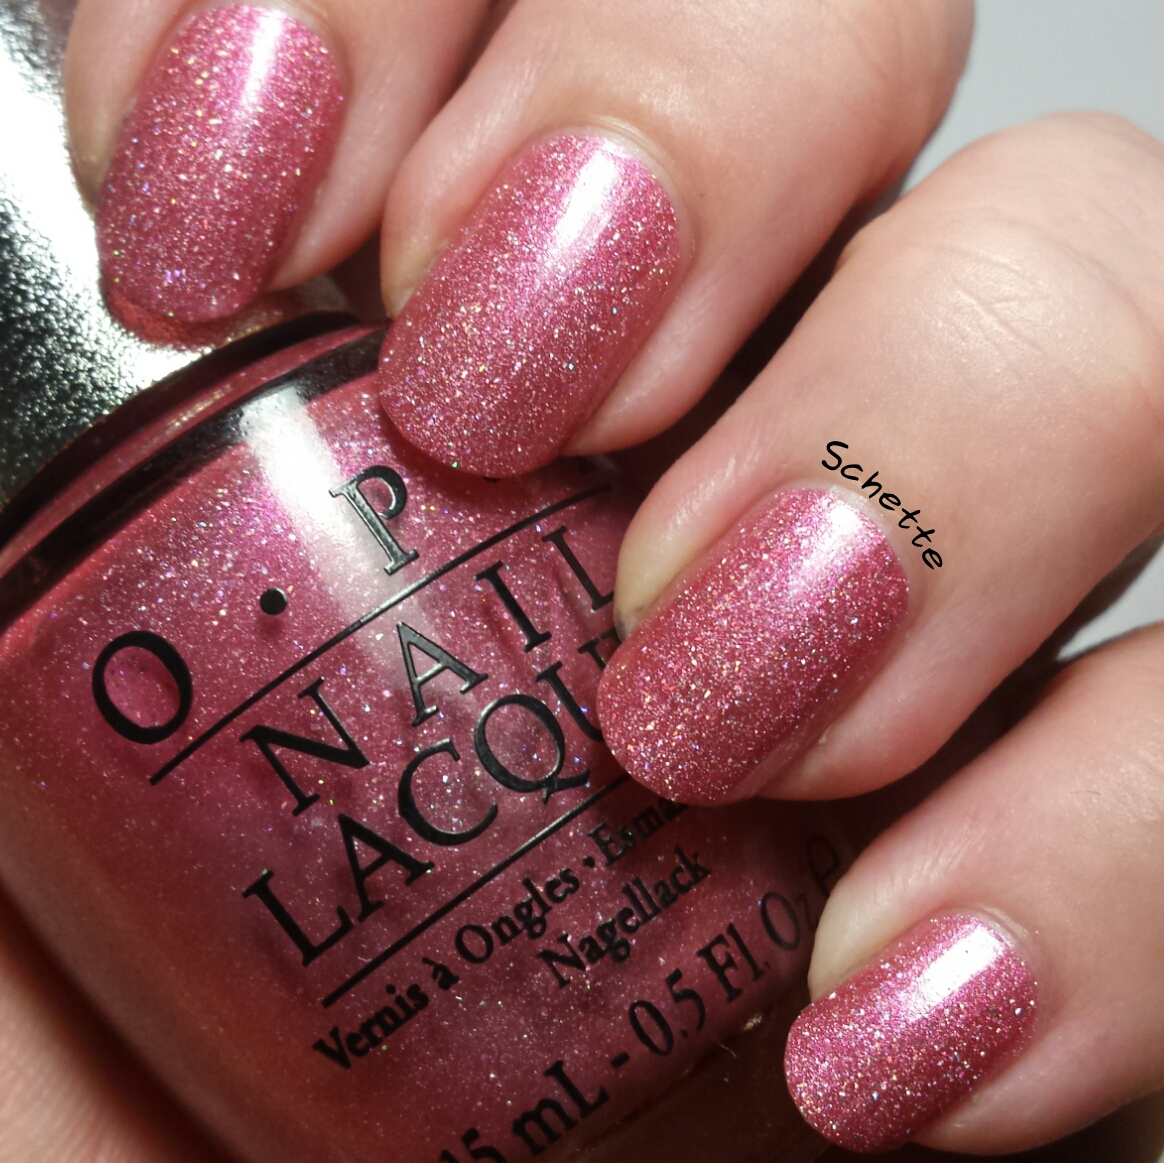 OPI : DS Illuminate, Opulence, Reserve